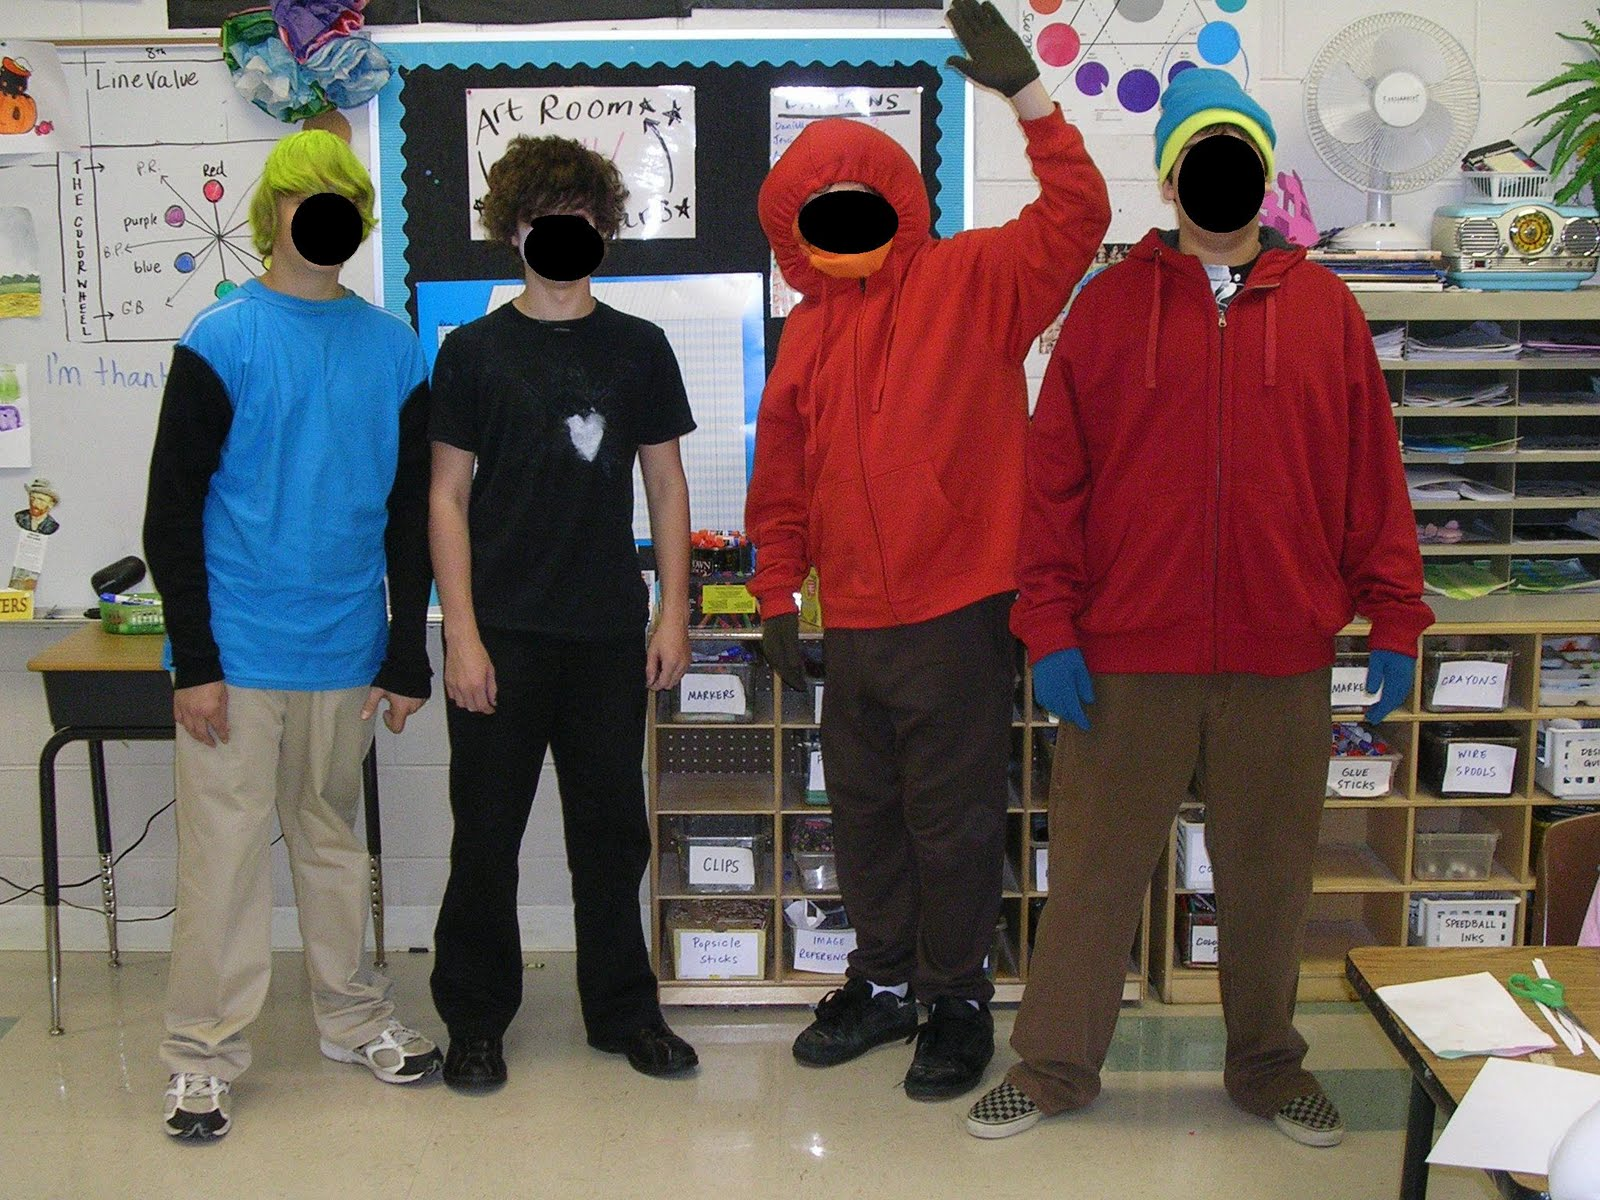 artful artsy amy students dressed up as south park denizens